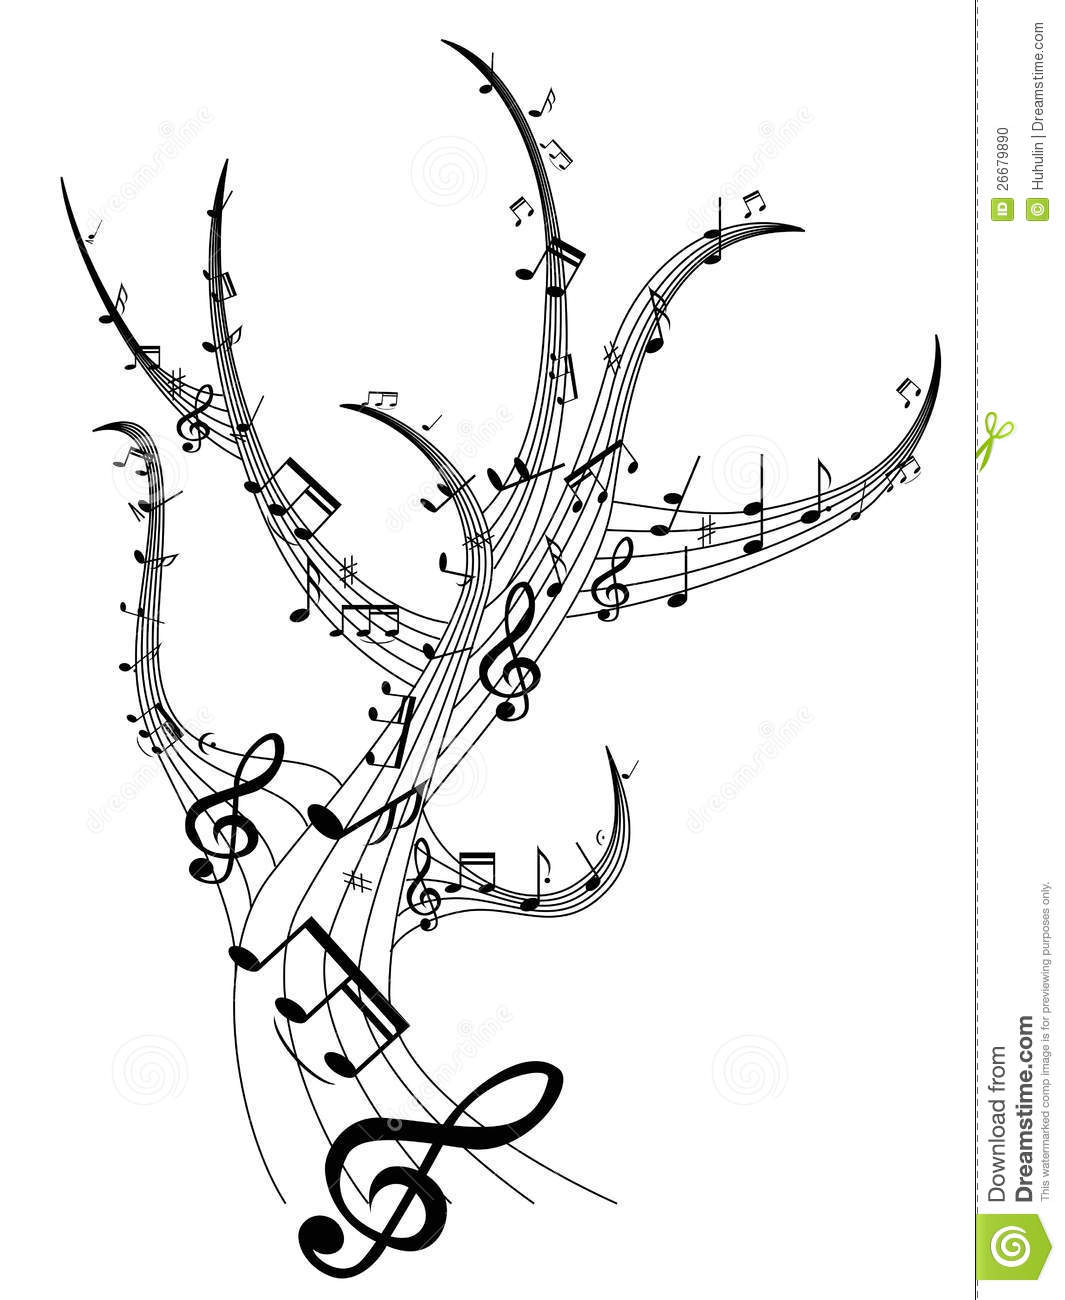 16 Cool Designs To Draw Music Notes Images - Music Notes ...